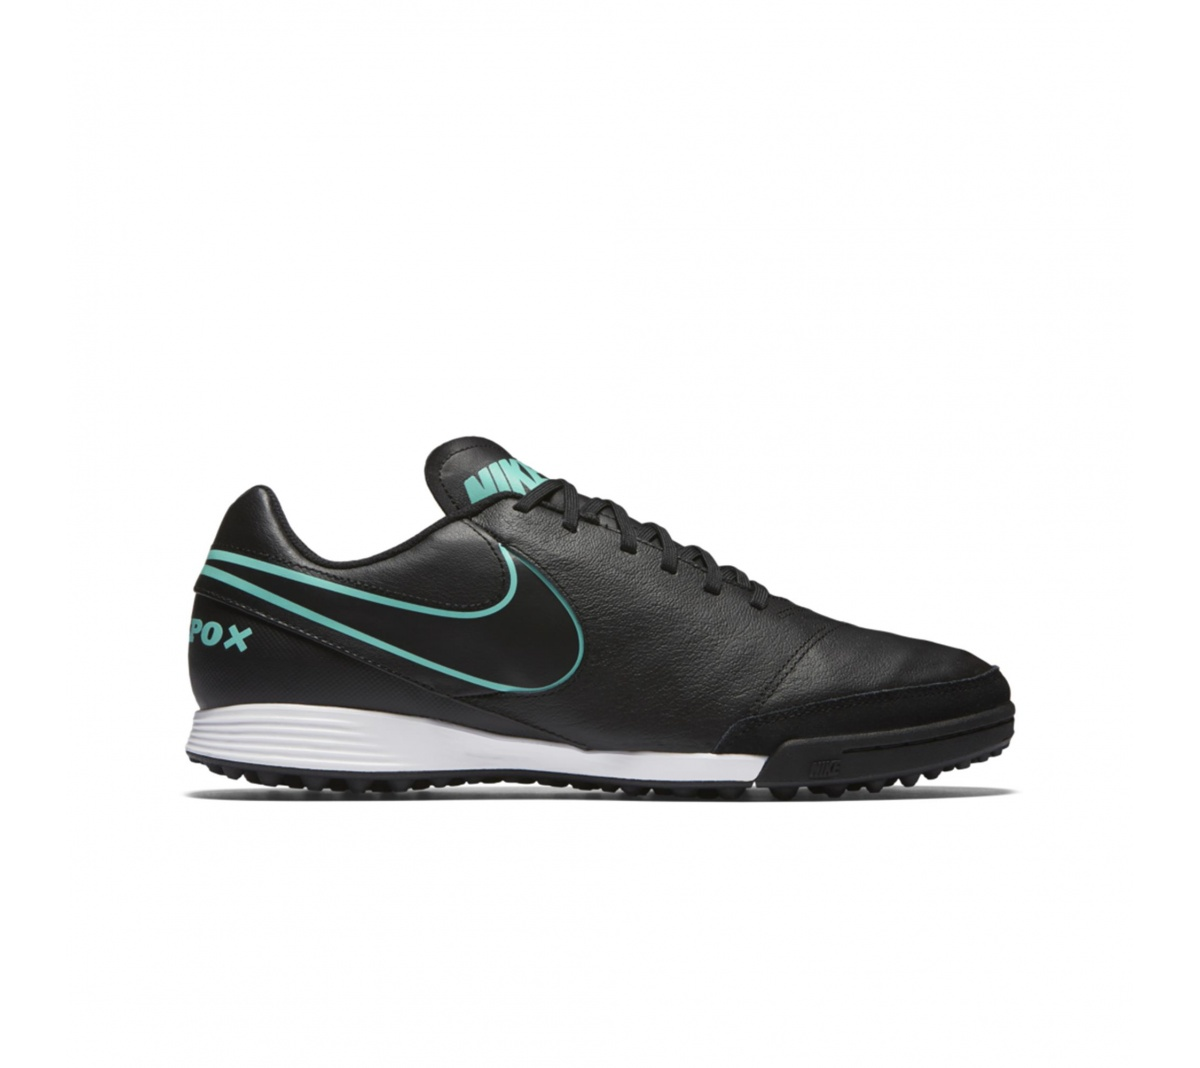 Chuteira Nike Tiempo Genio II Leather Society - Mundo do Futebol b58afdfdd4533